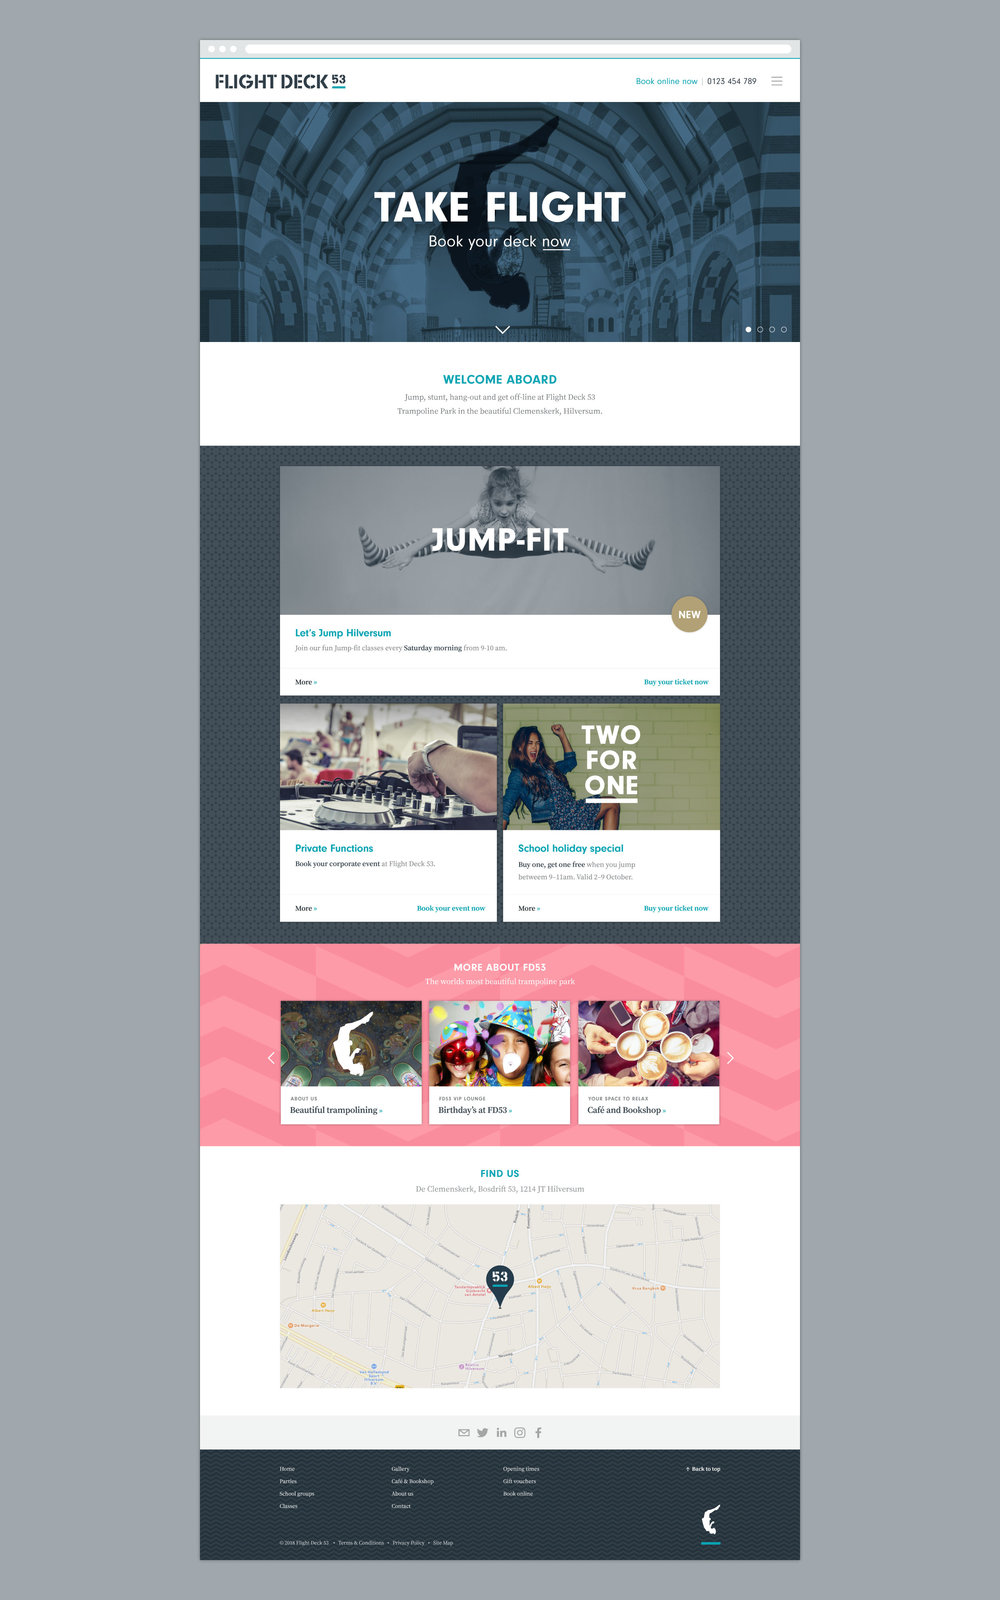 Flight Deck 53 website design concept – Design by Ian Whalley